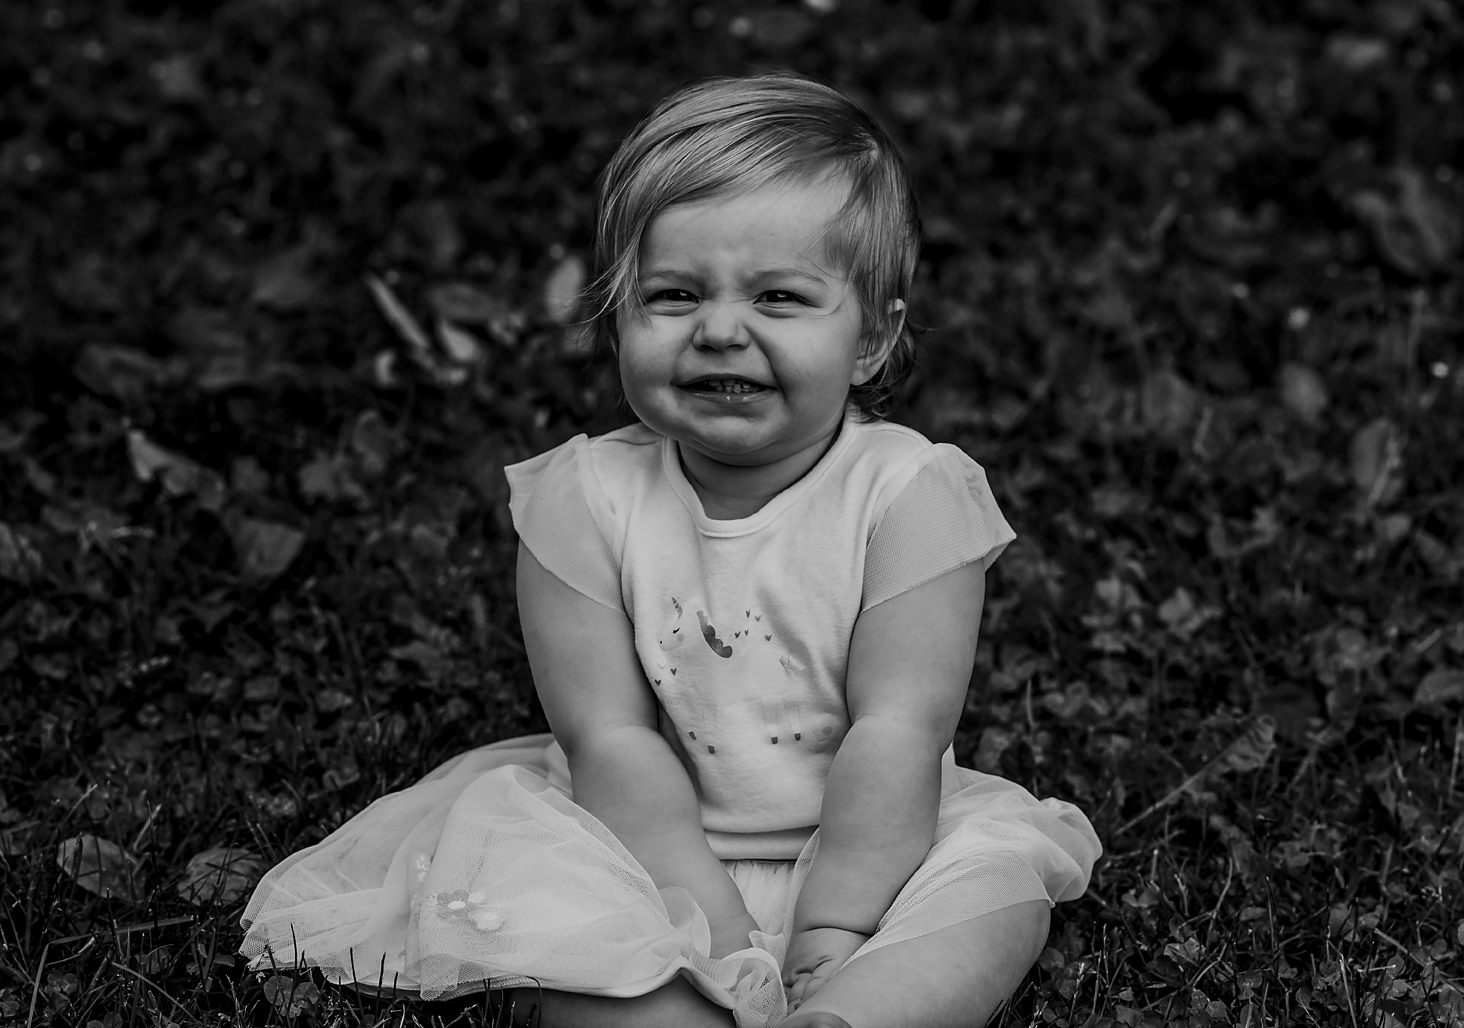 FAMILY PHOTOGRAPHY JEN LINFIELD KW